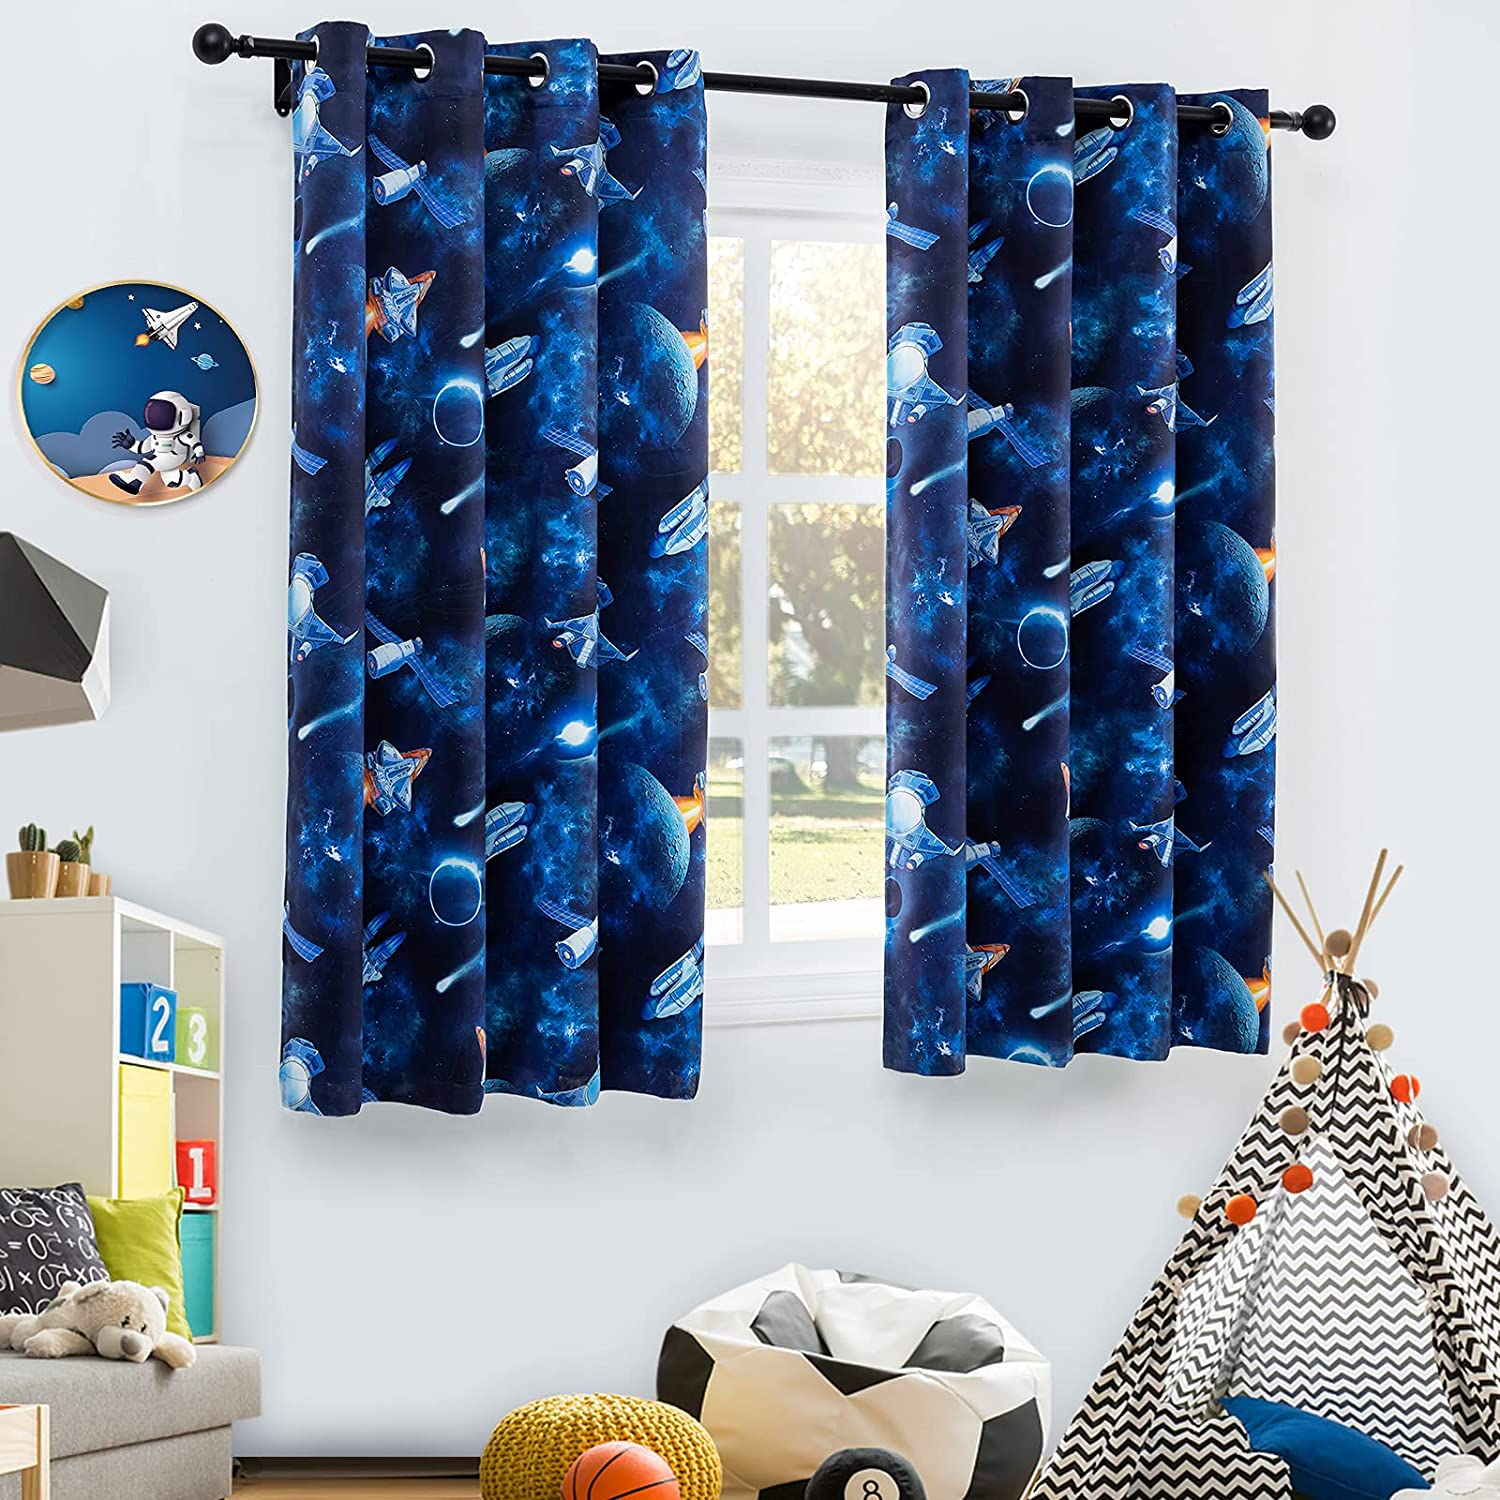 Drewin Blackout Kids Curtains Daily bargain sale for Length 84 Dallas Mall Outer Bedroom Inches